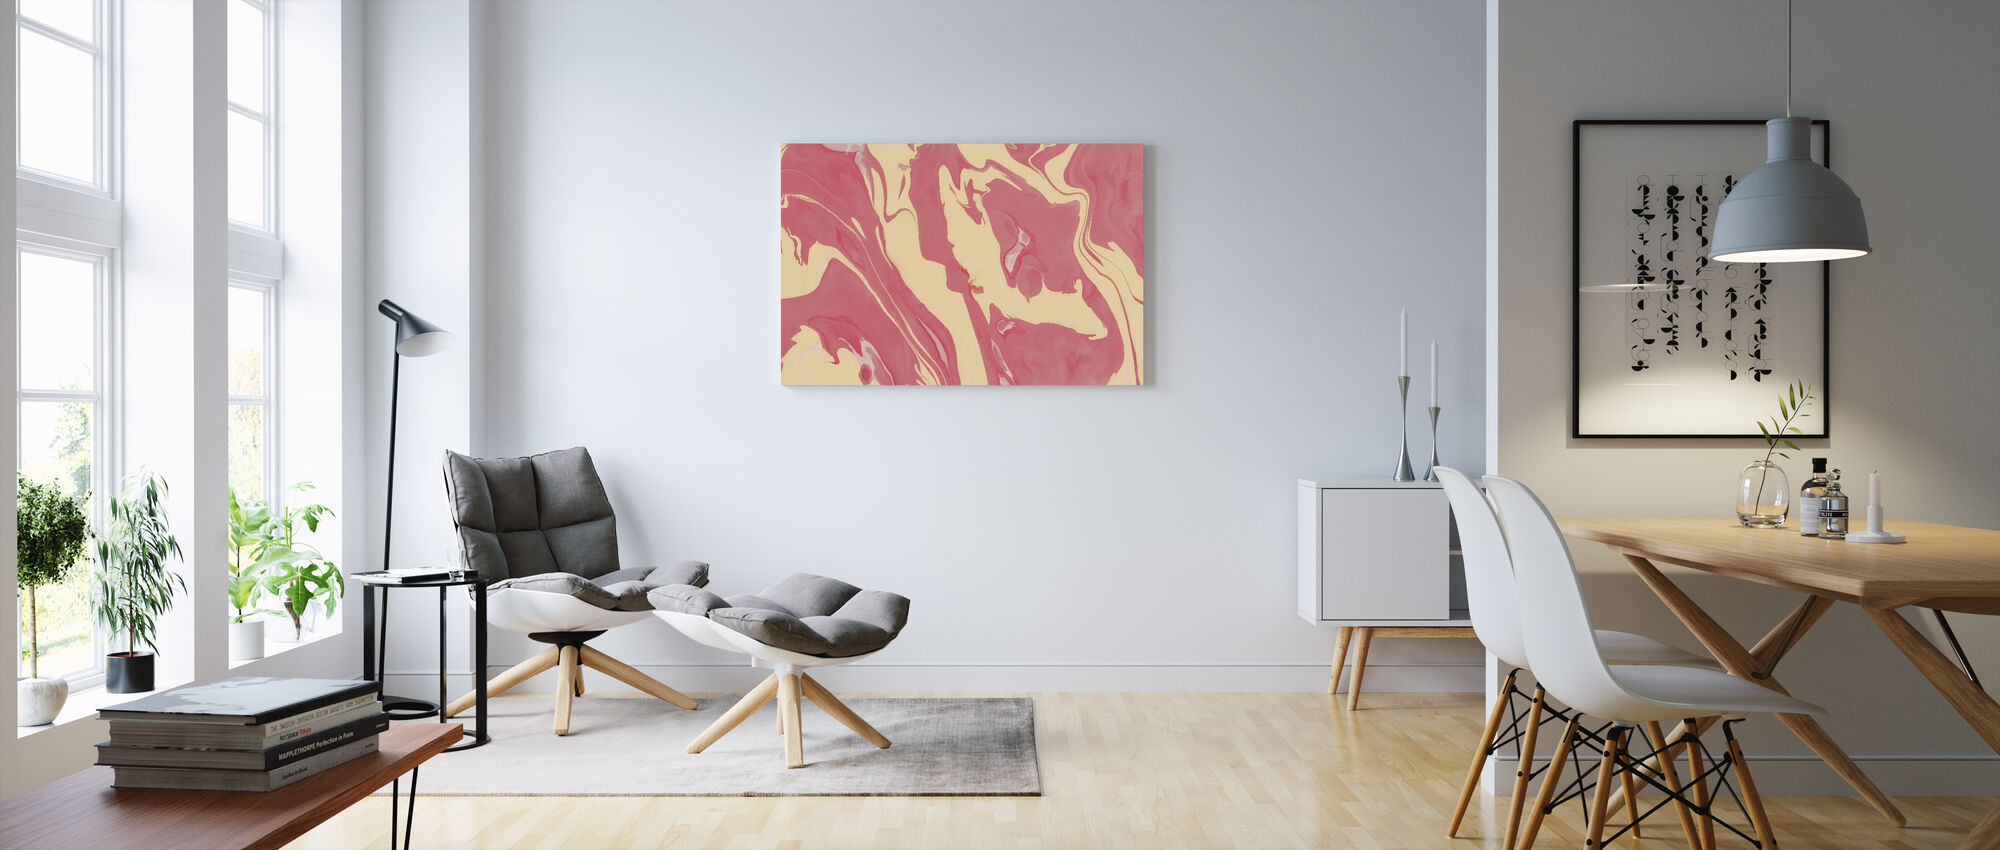 Abstract Marble Paint III - Canvas print - Living Room